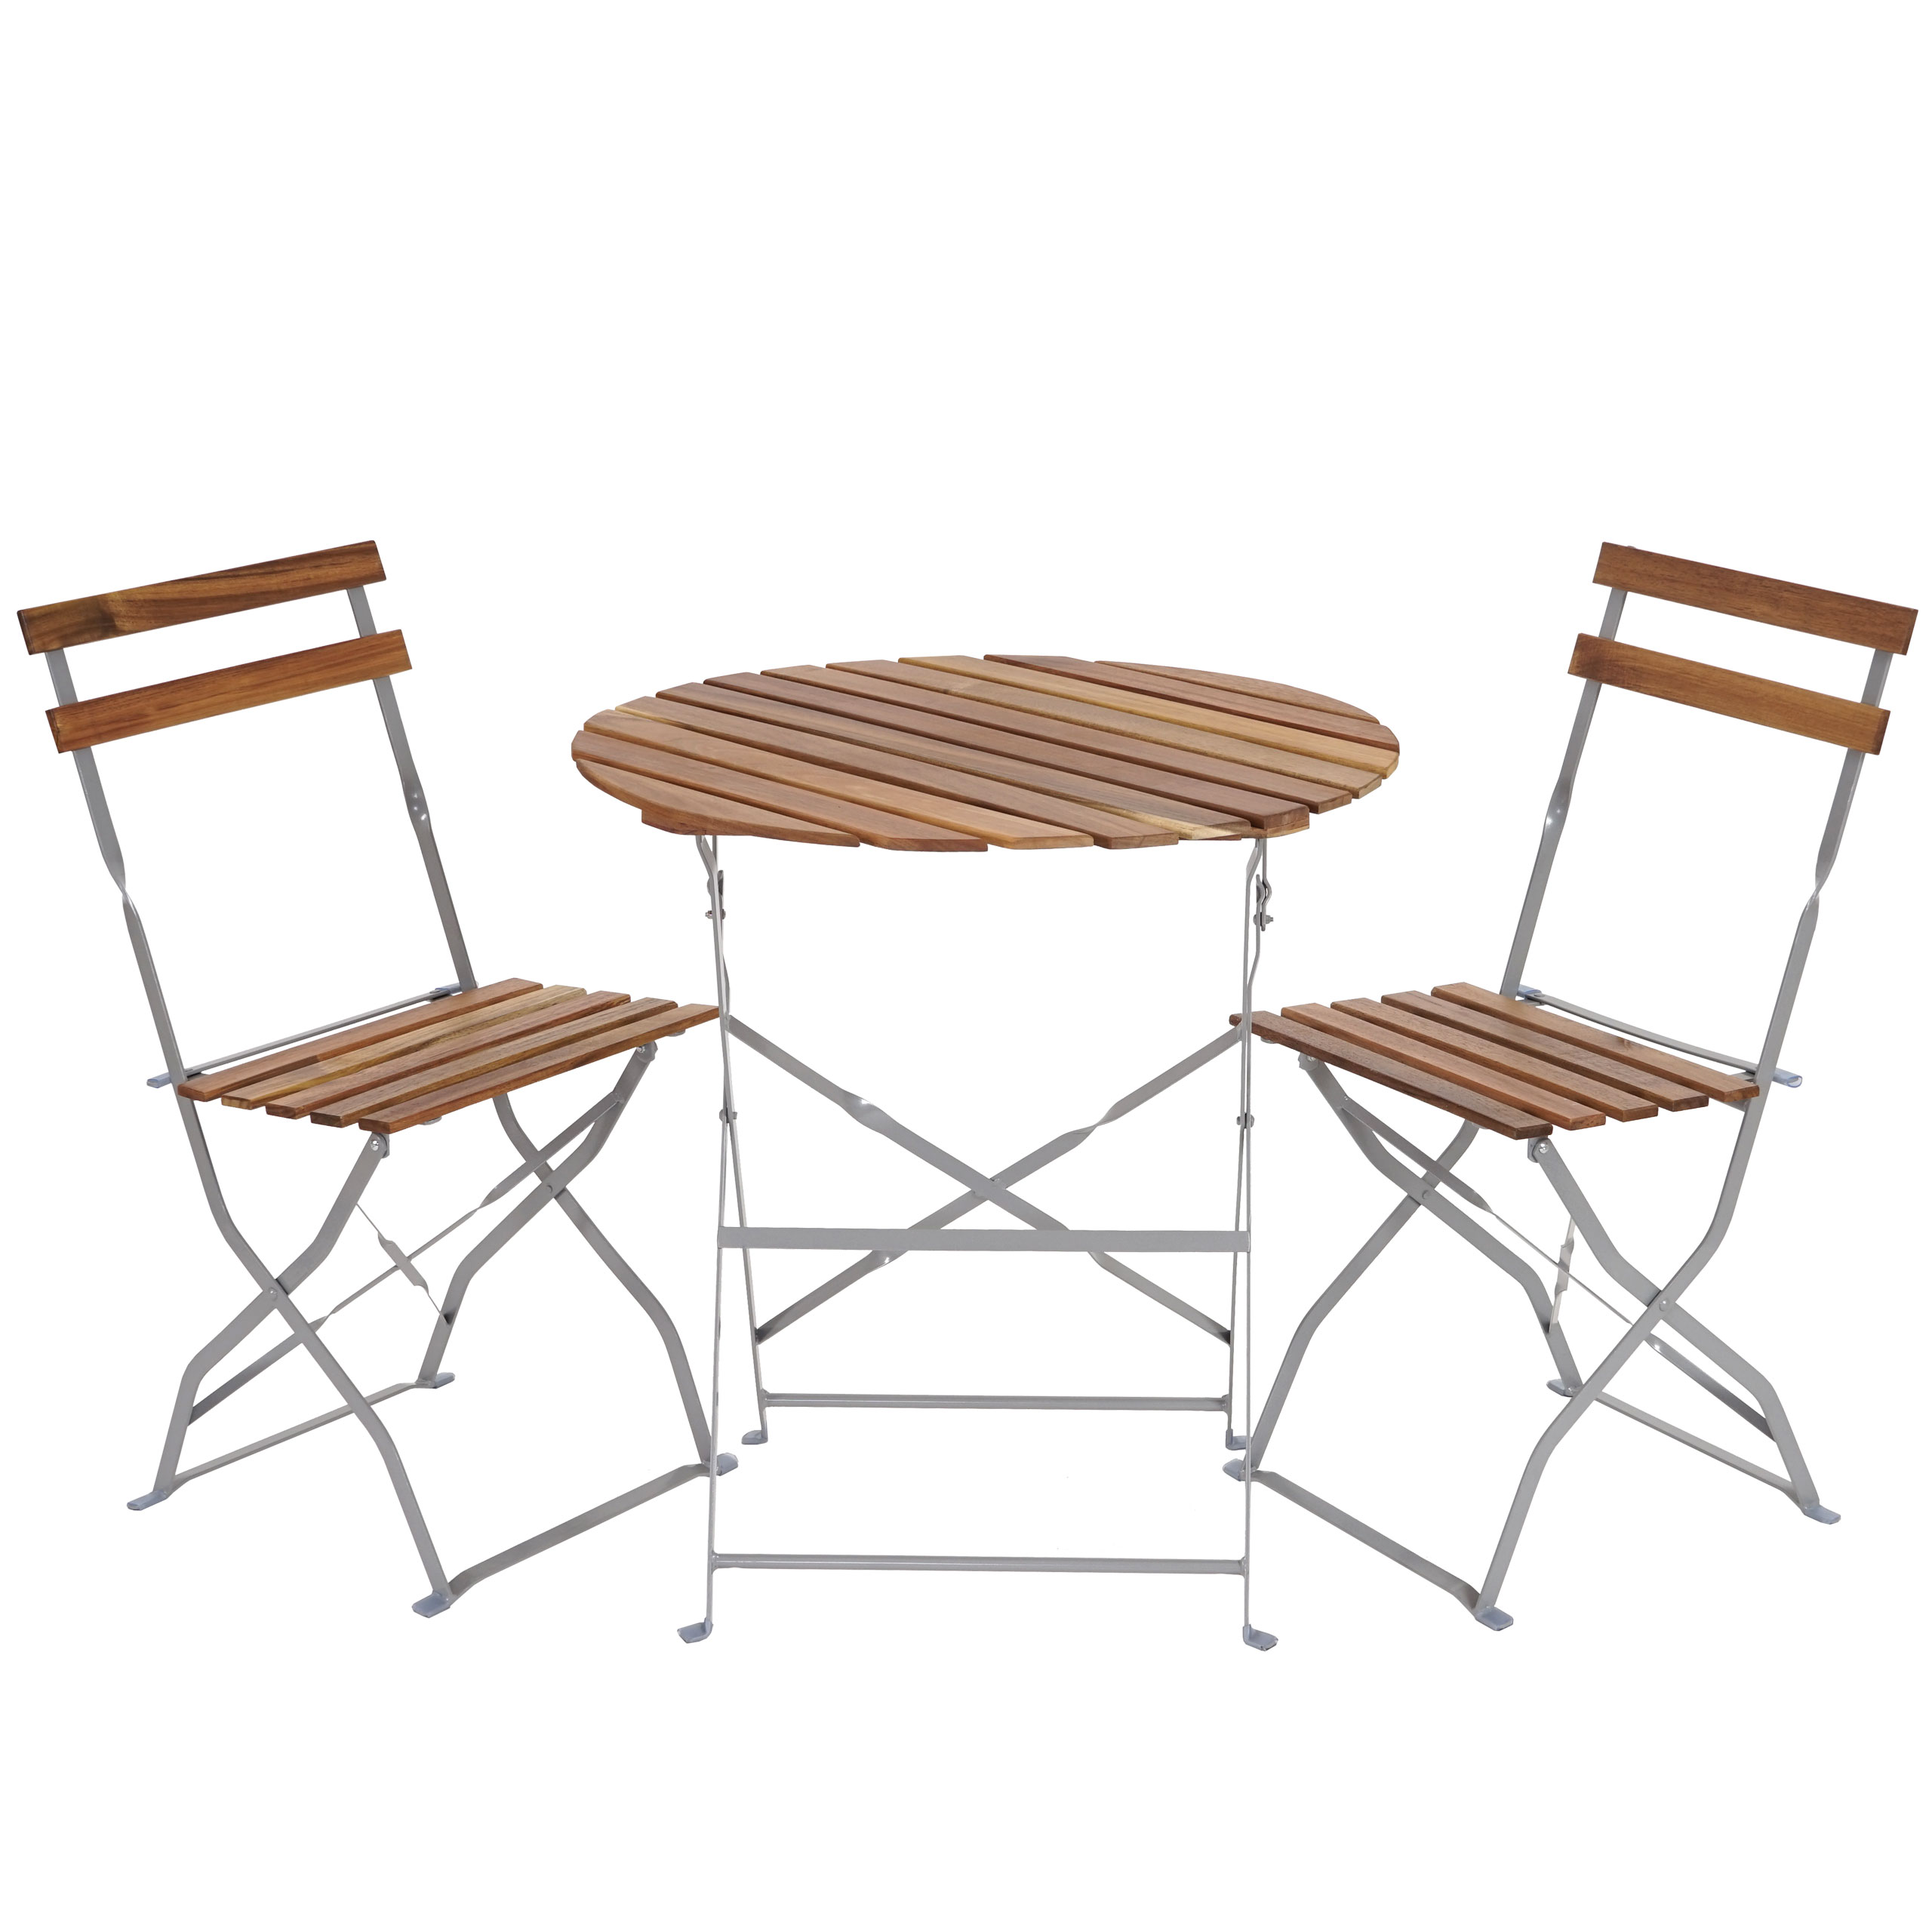 biergarten garnitur meran bistro set tisch st hle akazie ge lt natur ebay. Black Bedroom Furniture Sets. Home Design Ideas